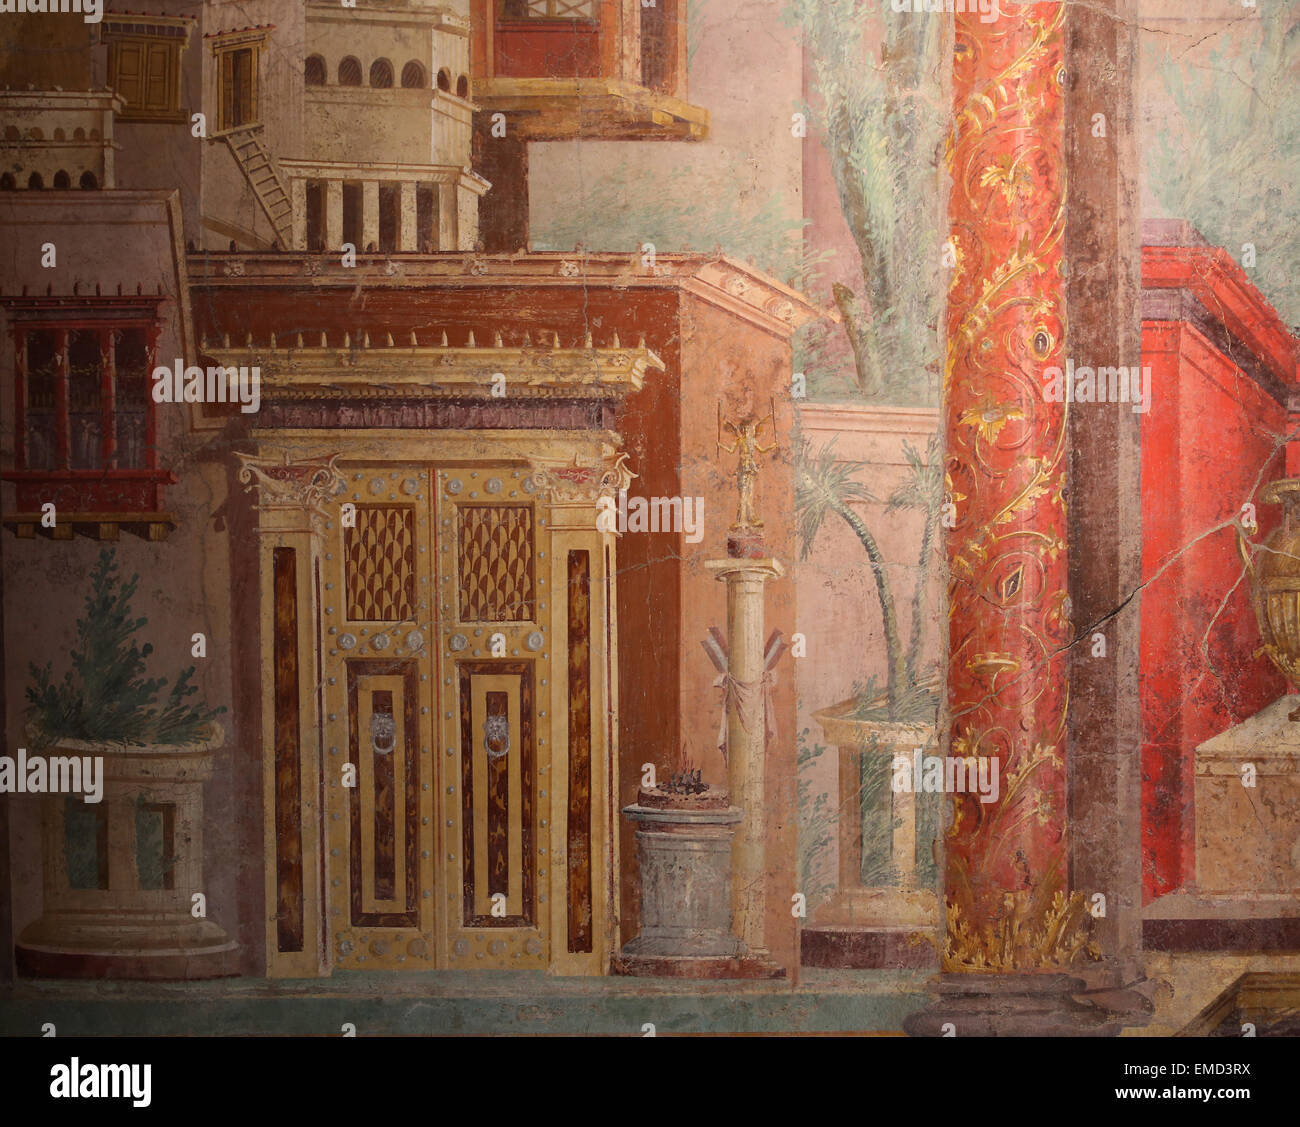 Roman Wall Painting. 50-40 BC. Second Style. Colored architectural scenes. Villa of P. Fannius Synistor at Boscoreale, Stock Photo